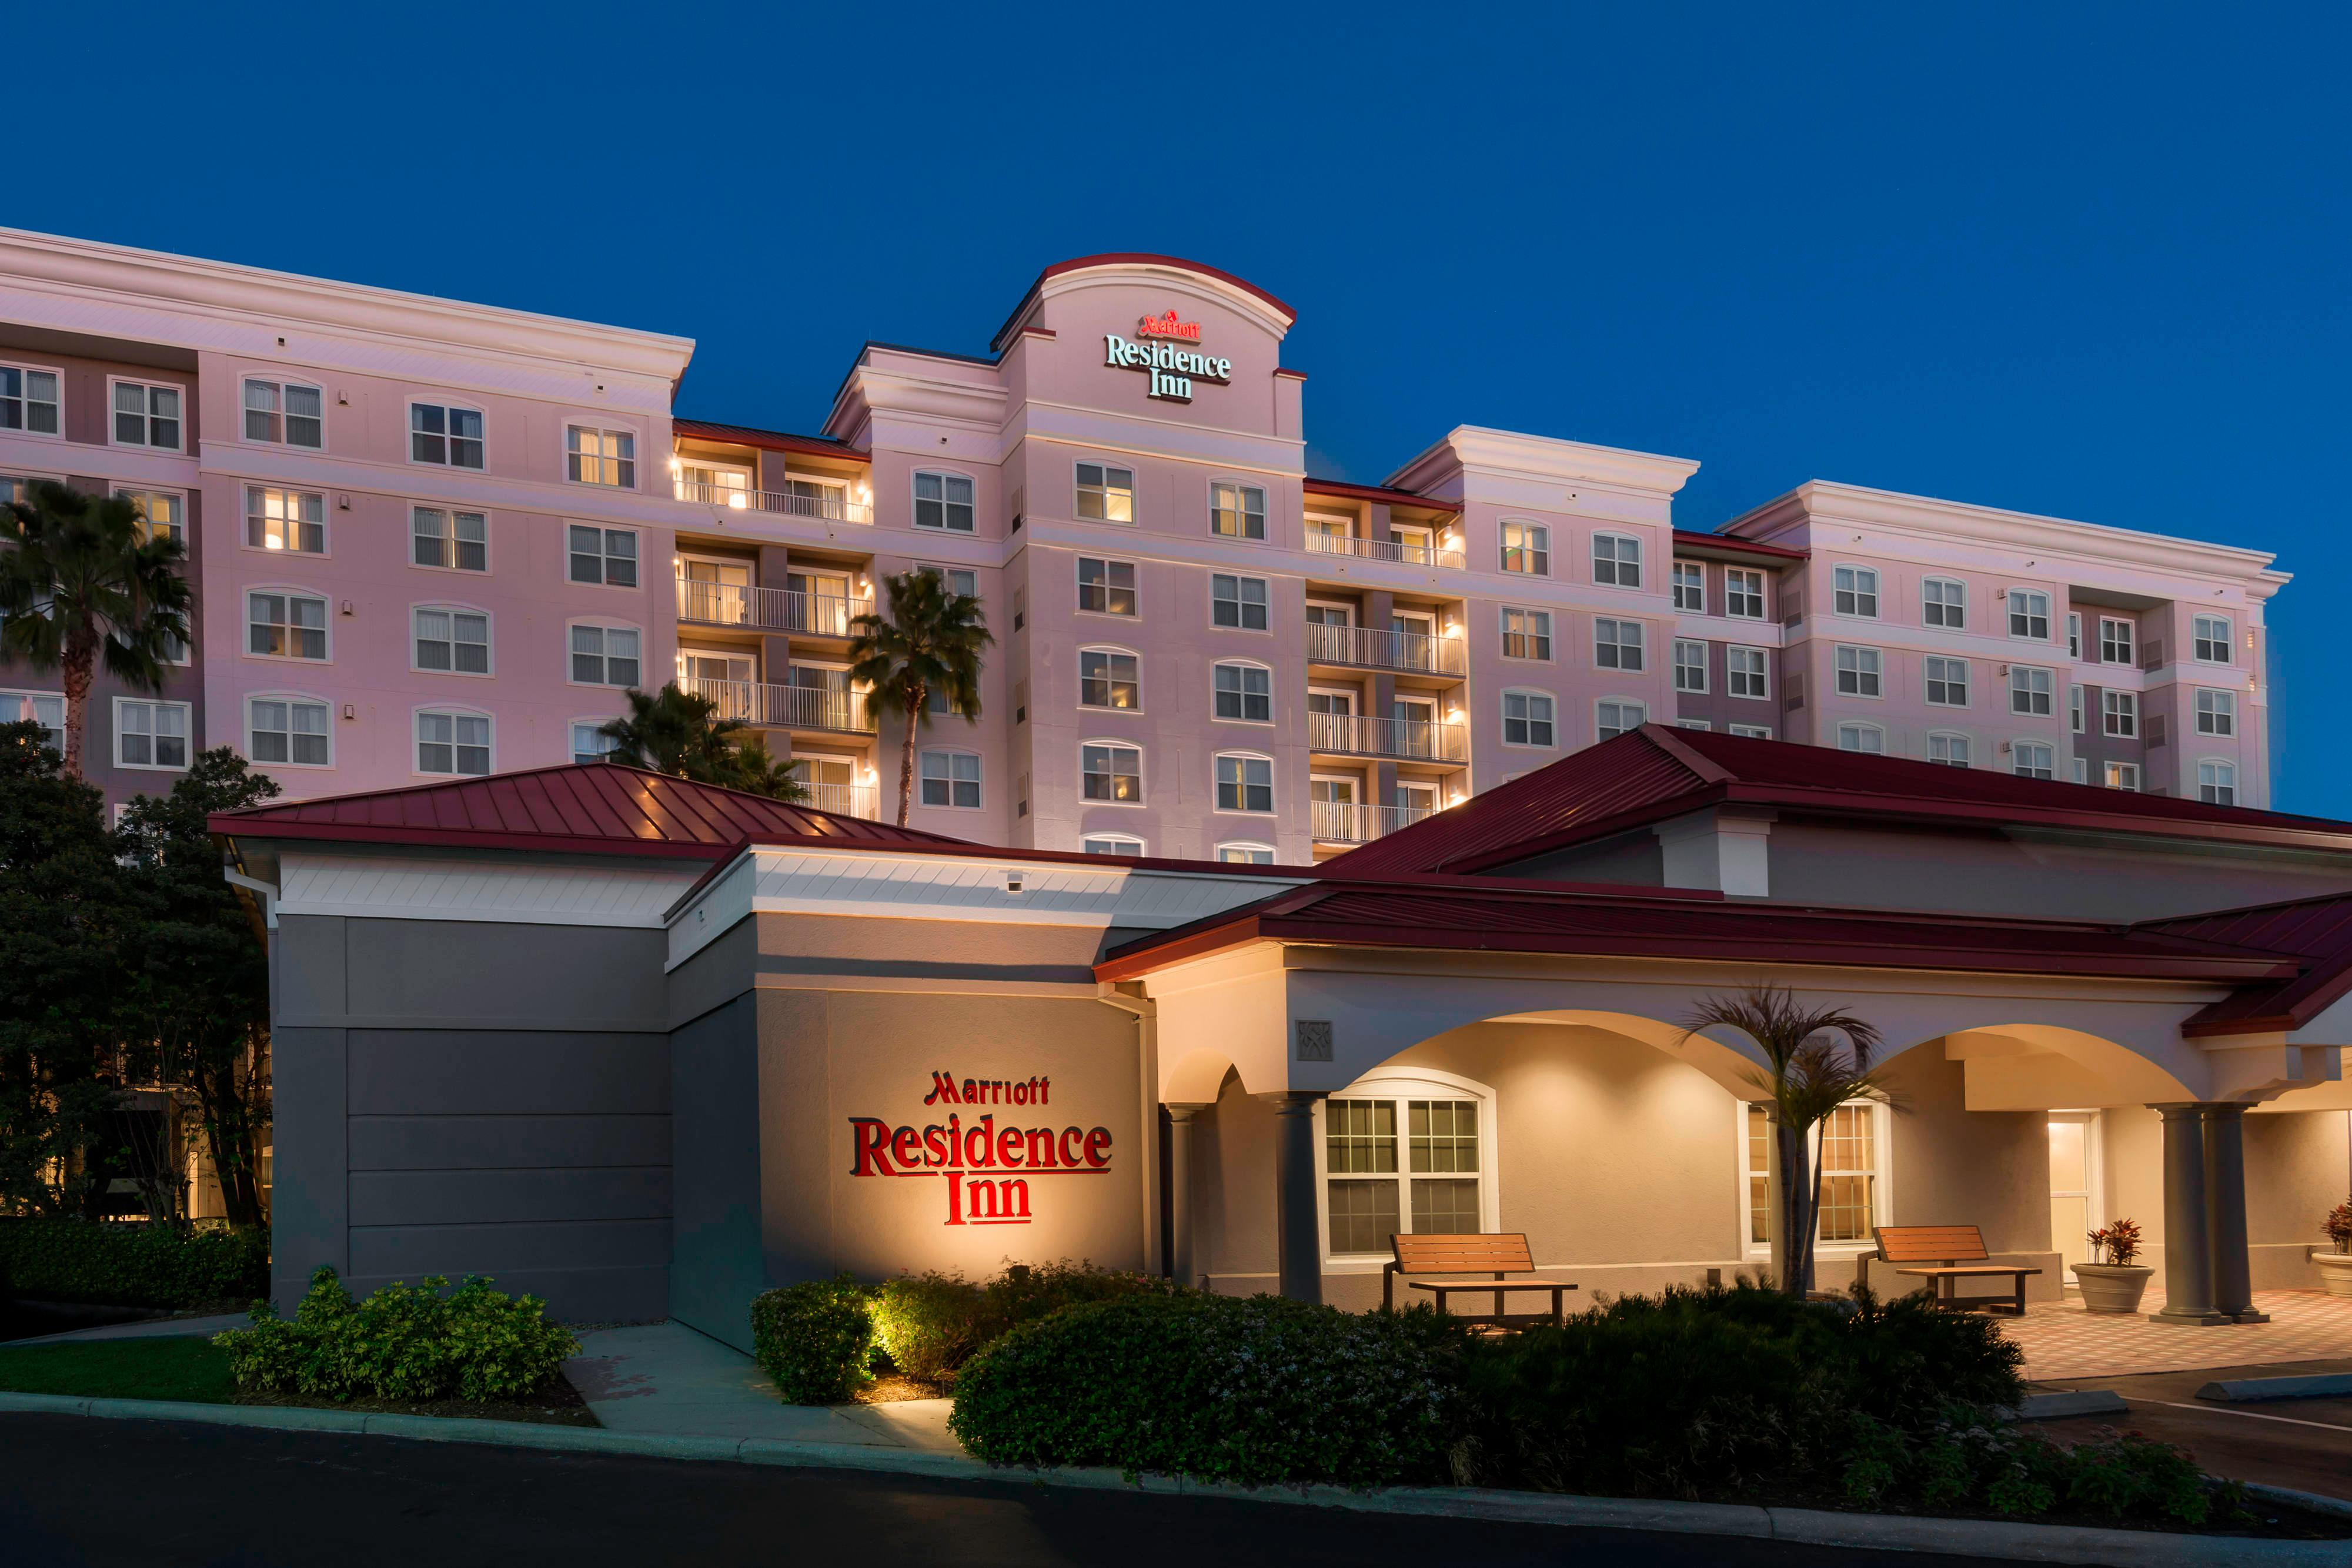 Residence Inn Airport Marriott